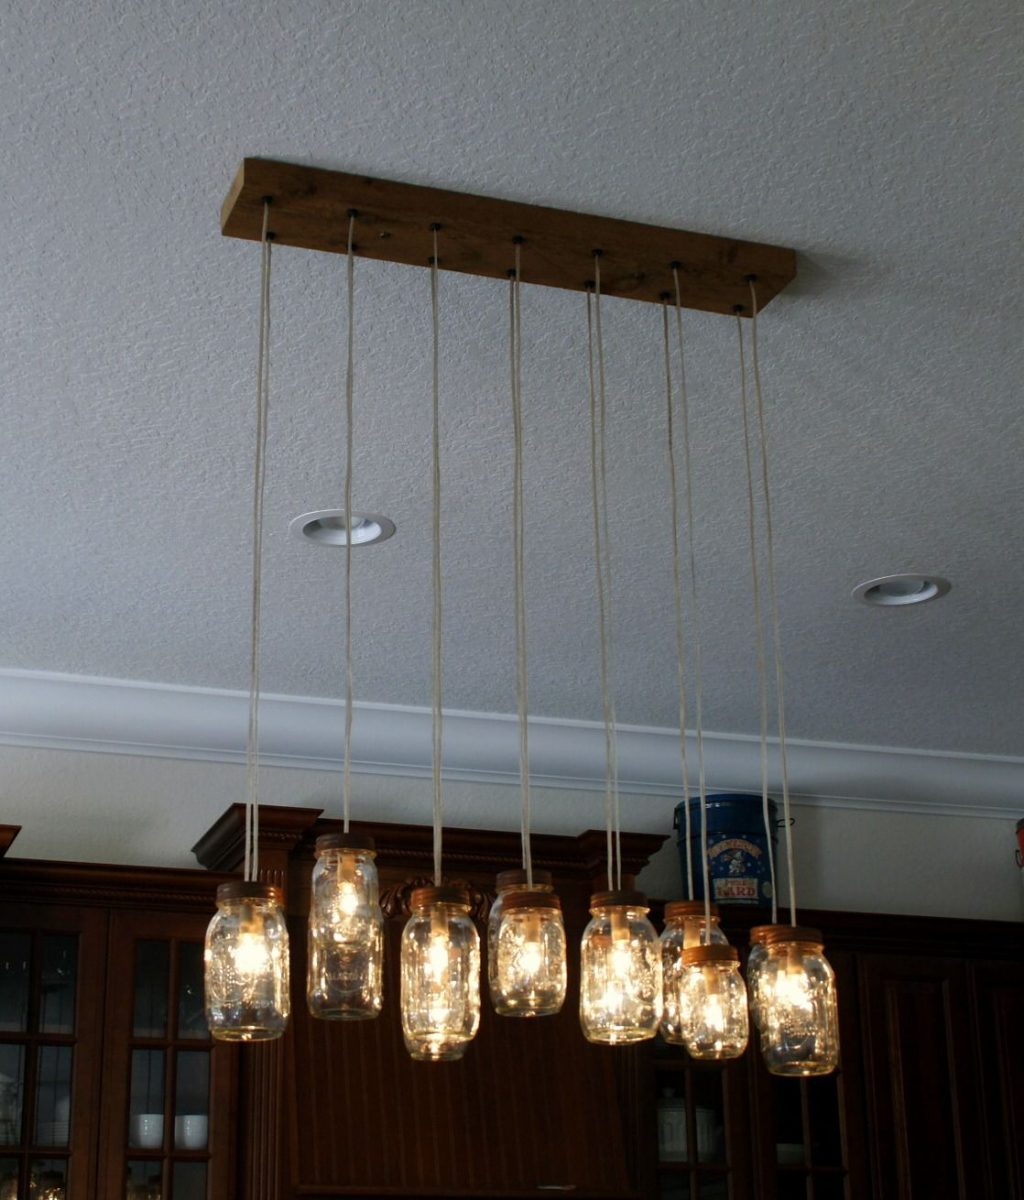 Buy A Hand Made 14 Light Mason Jar Chandelier Rustic Cedar Made